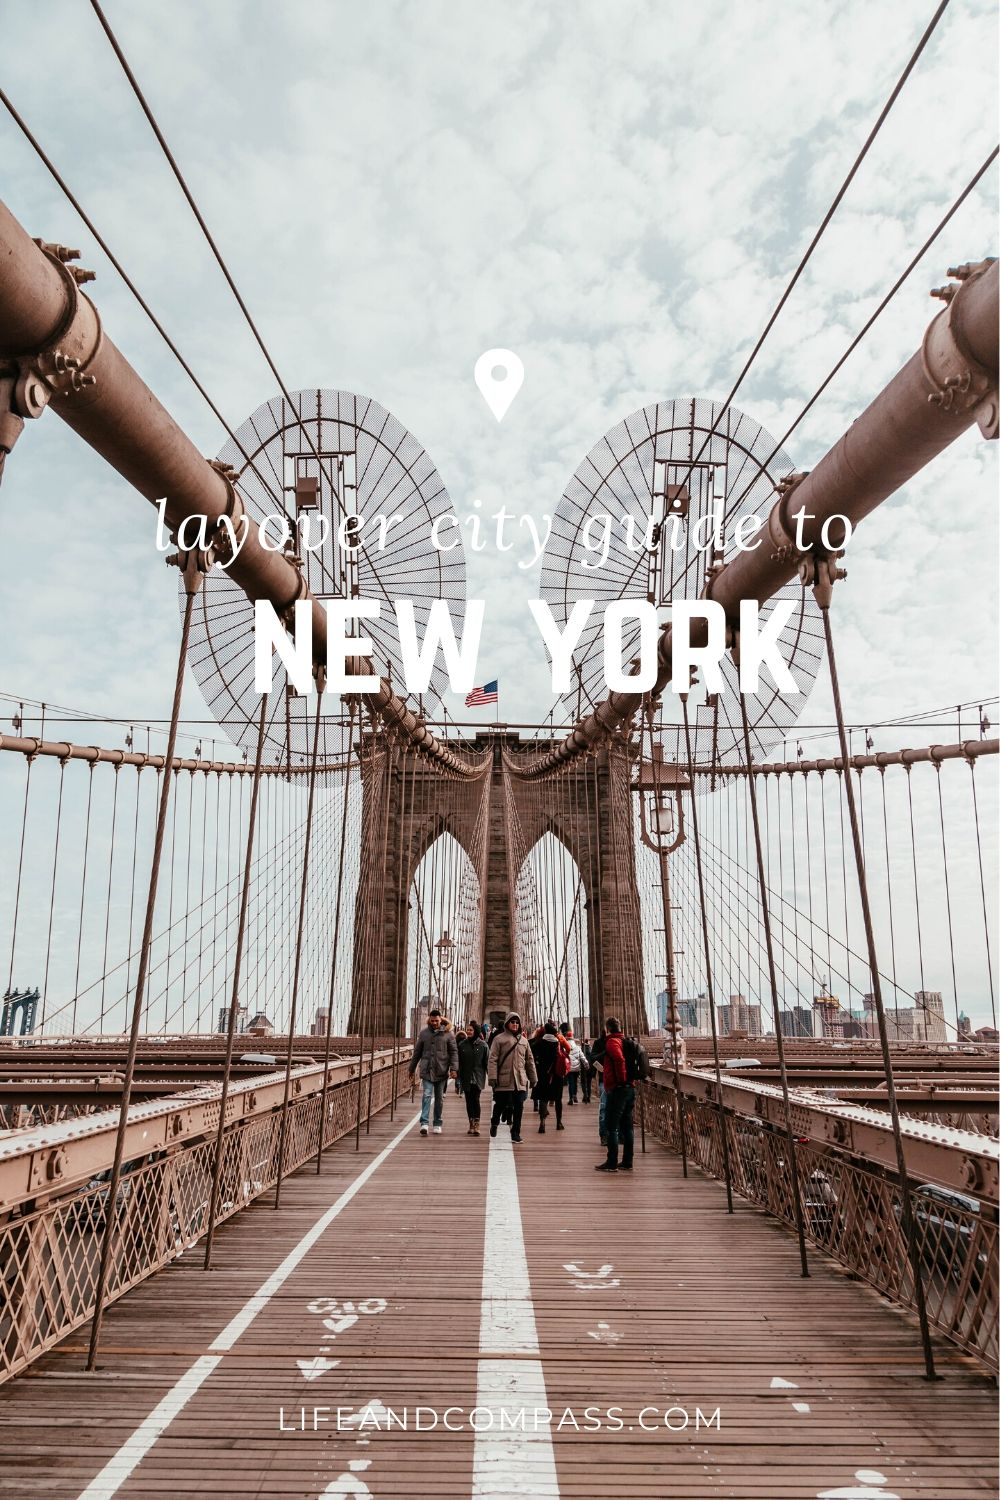 Since I've done these itineraries quite often, and explore cities in less than 24 hours (or one-day layovers) I thought I would start a series on Layover City Guide to help you plan your day and what better city to start than New York?